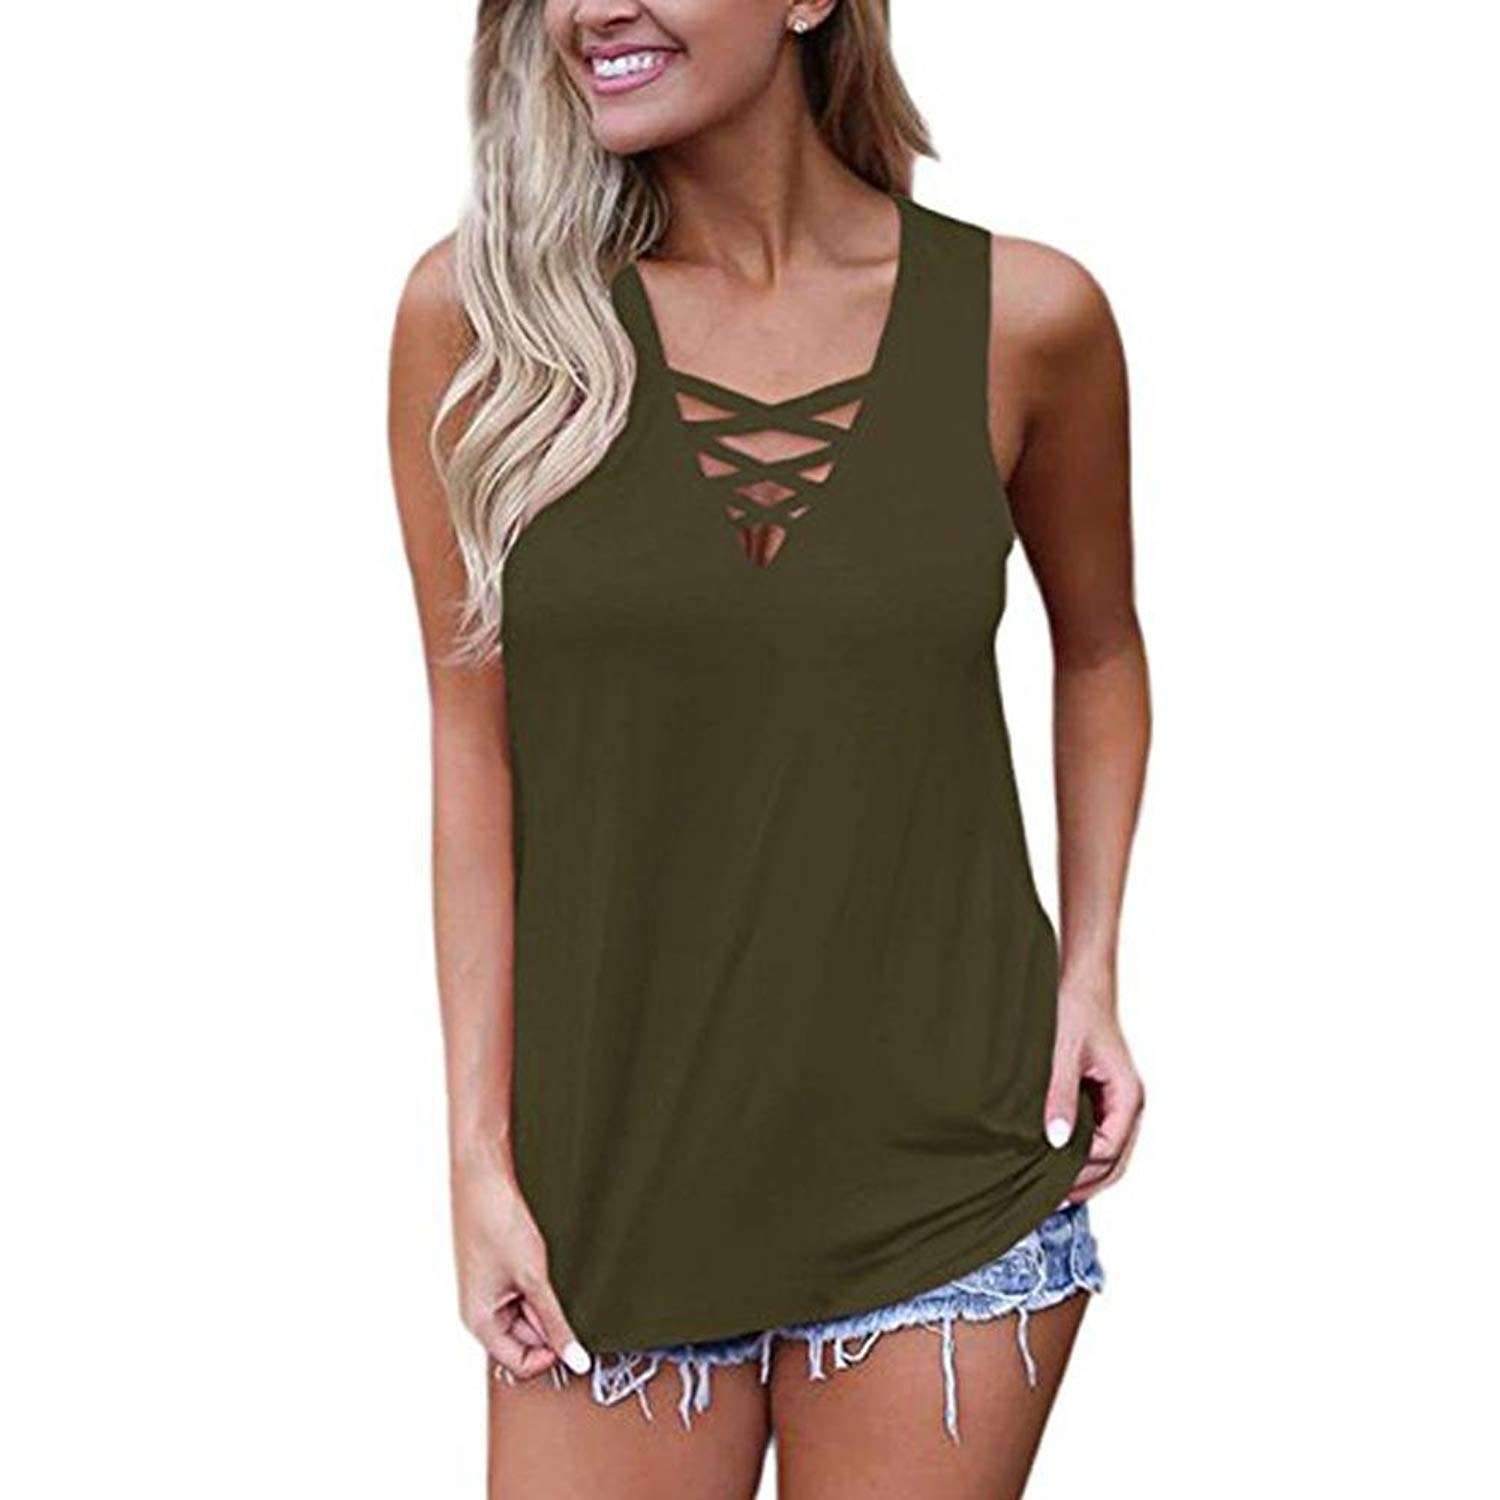 95792ea72ad24 Get Quotations · Hmlai Women s Summer Sleeveless V Neck Lace Up Criss Cross  Cami Tank Tops Cute T Shirts